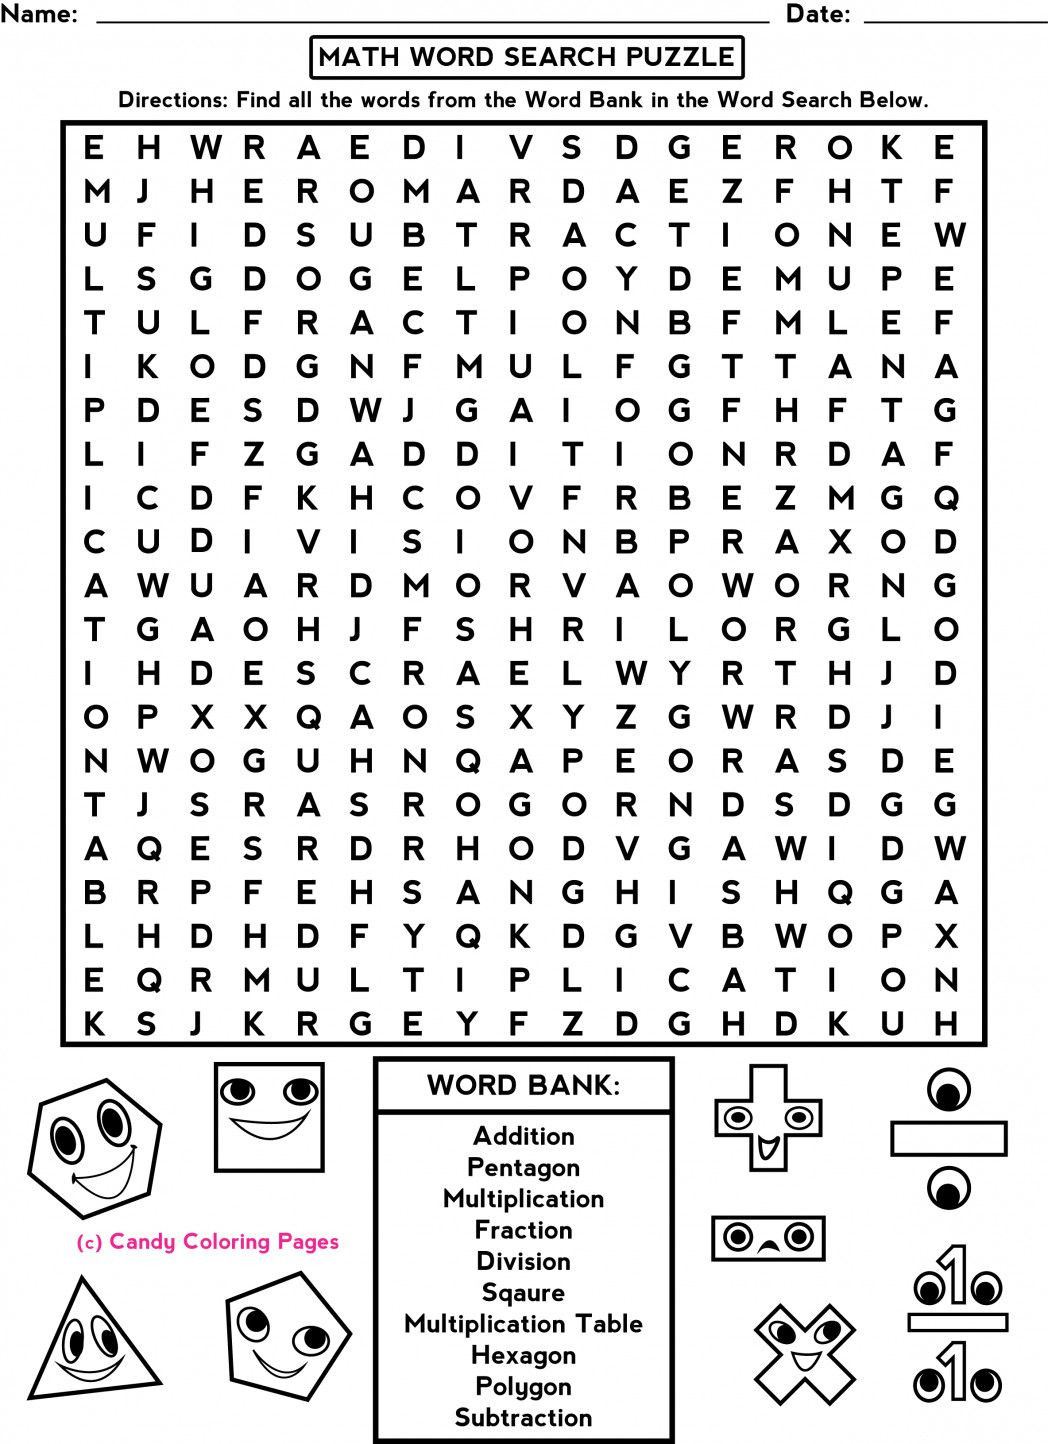 Middle School Math Puzzles Printable 2 Middle School Math Worksheets In 2020